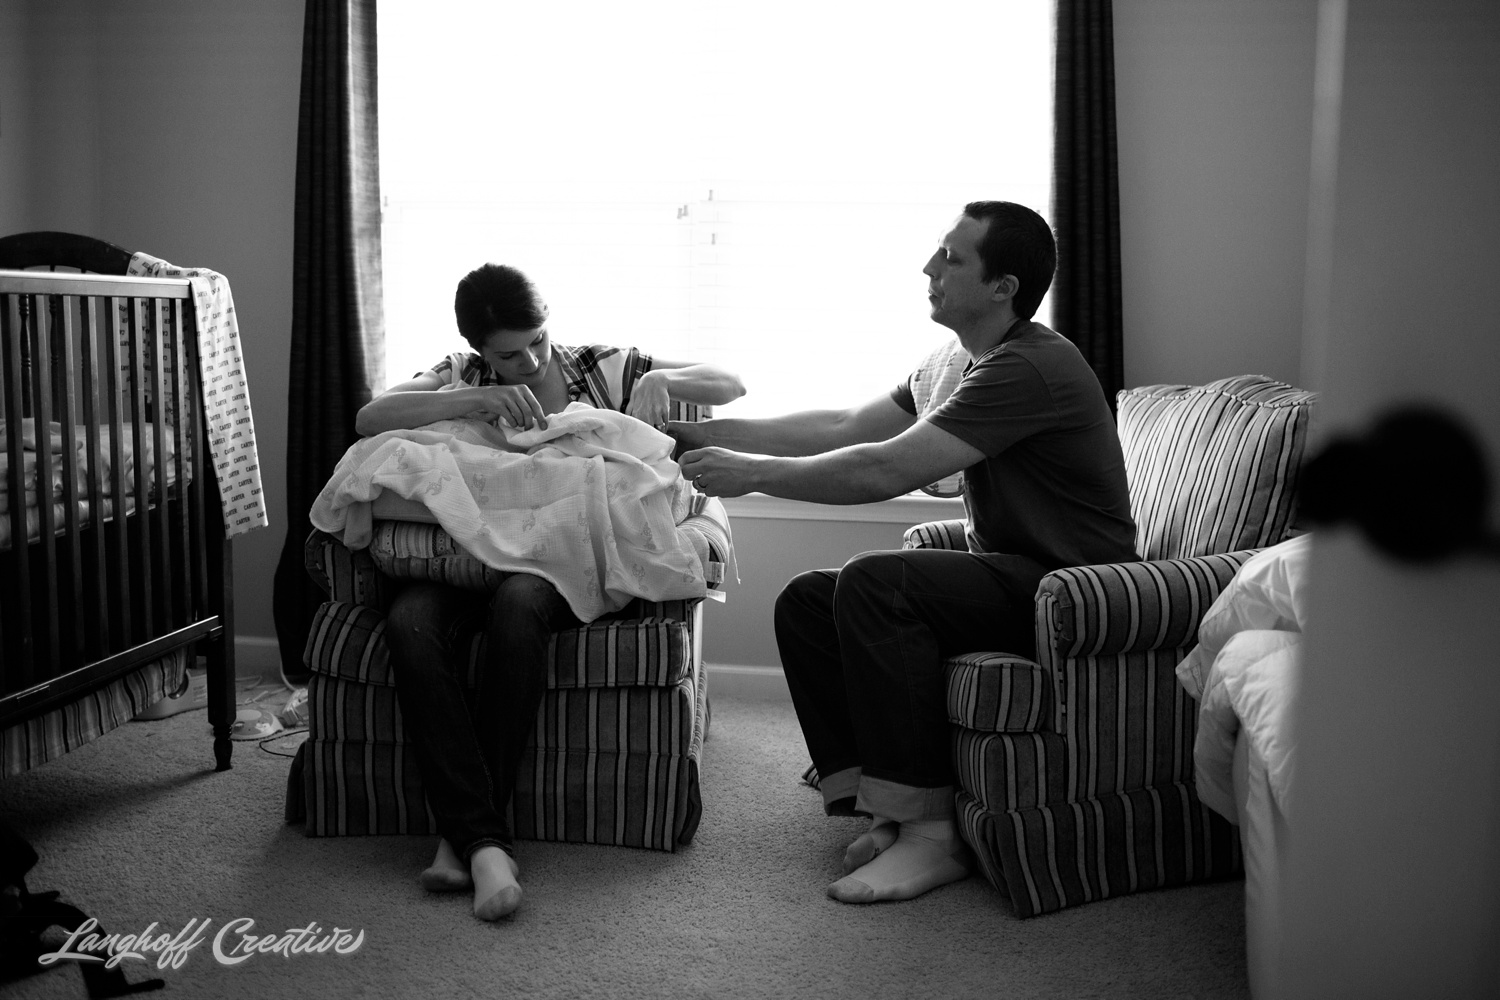 20170211-SchulteFamily-RealLifeSession-DayInTheLife-Twins-LanghoffCreative-DocumentaryFamilyPhotography-RDUphotographer-22-photo.jpg